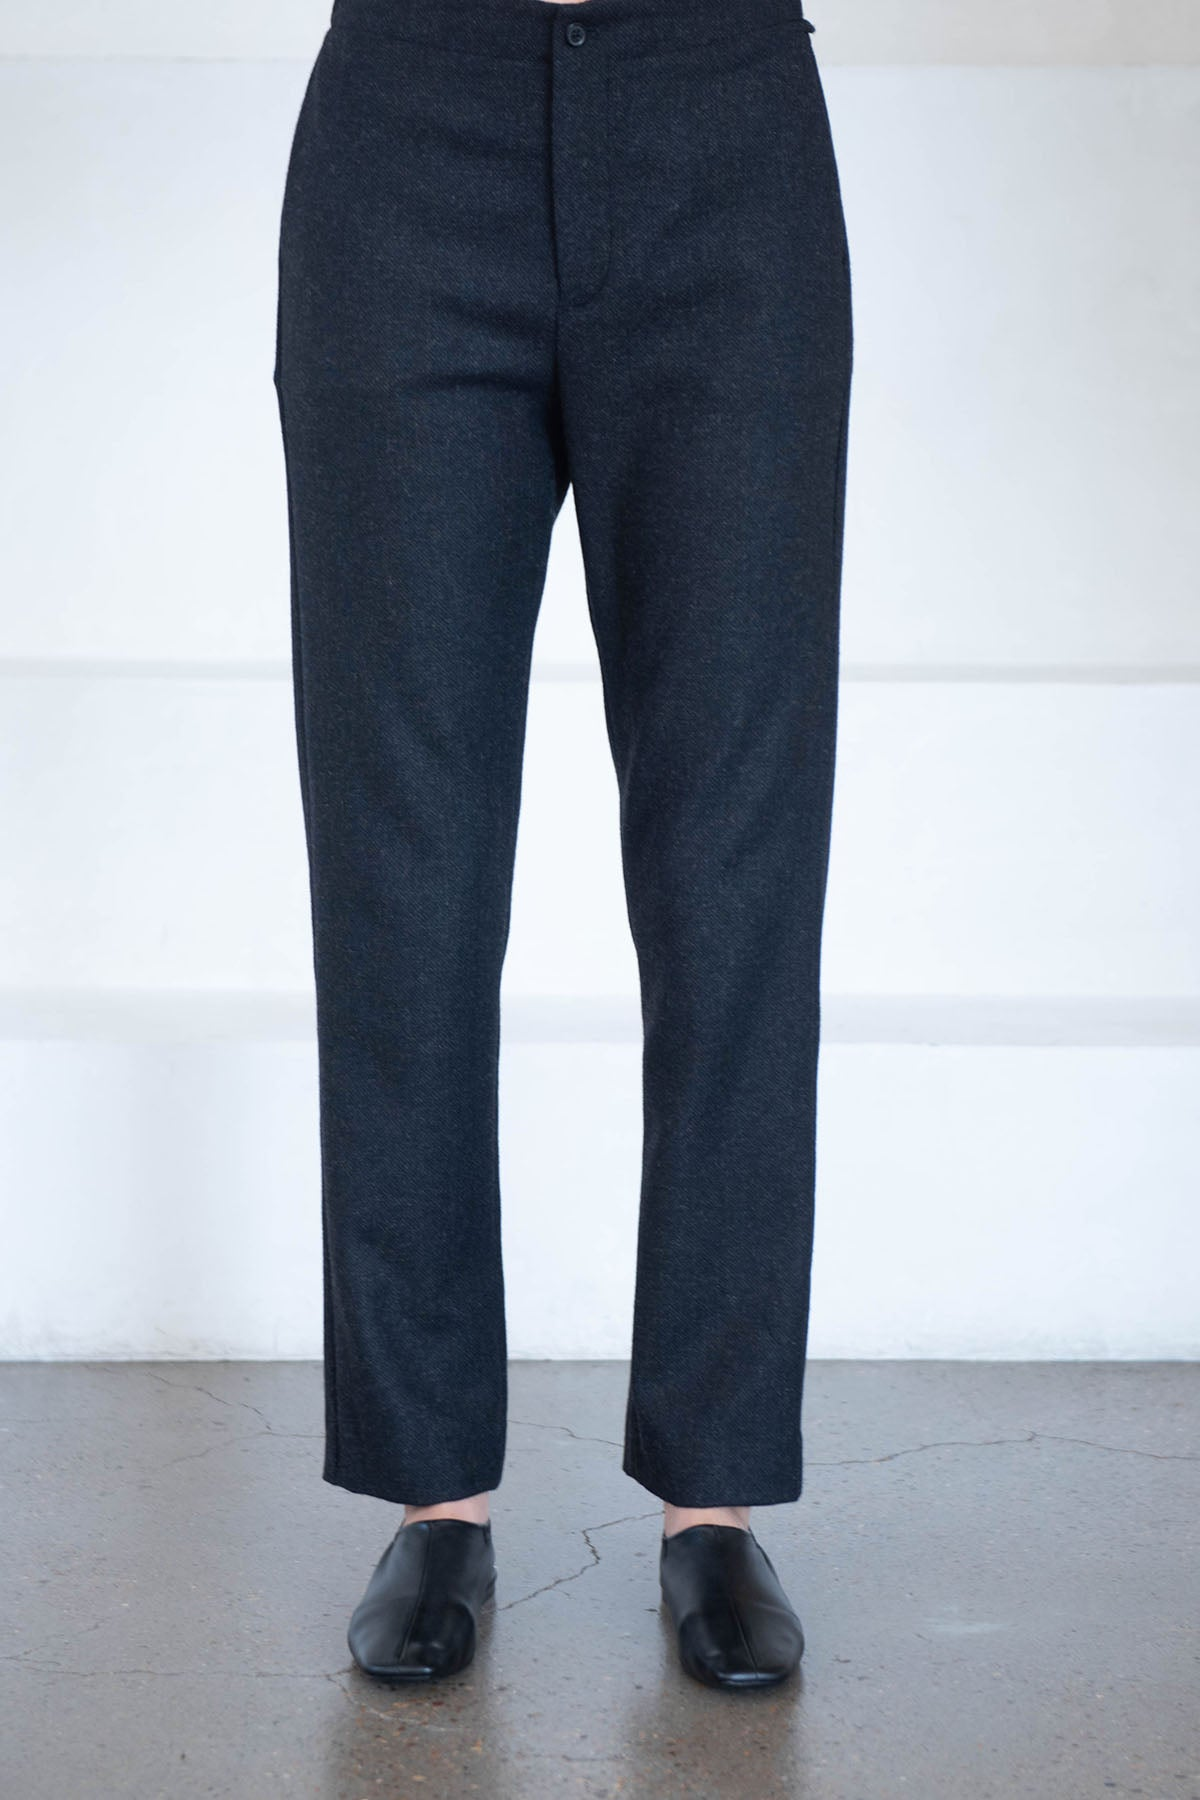 Stephan Schneider - acronym trousers, tweed